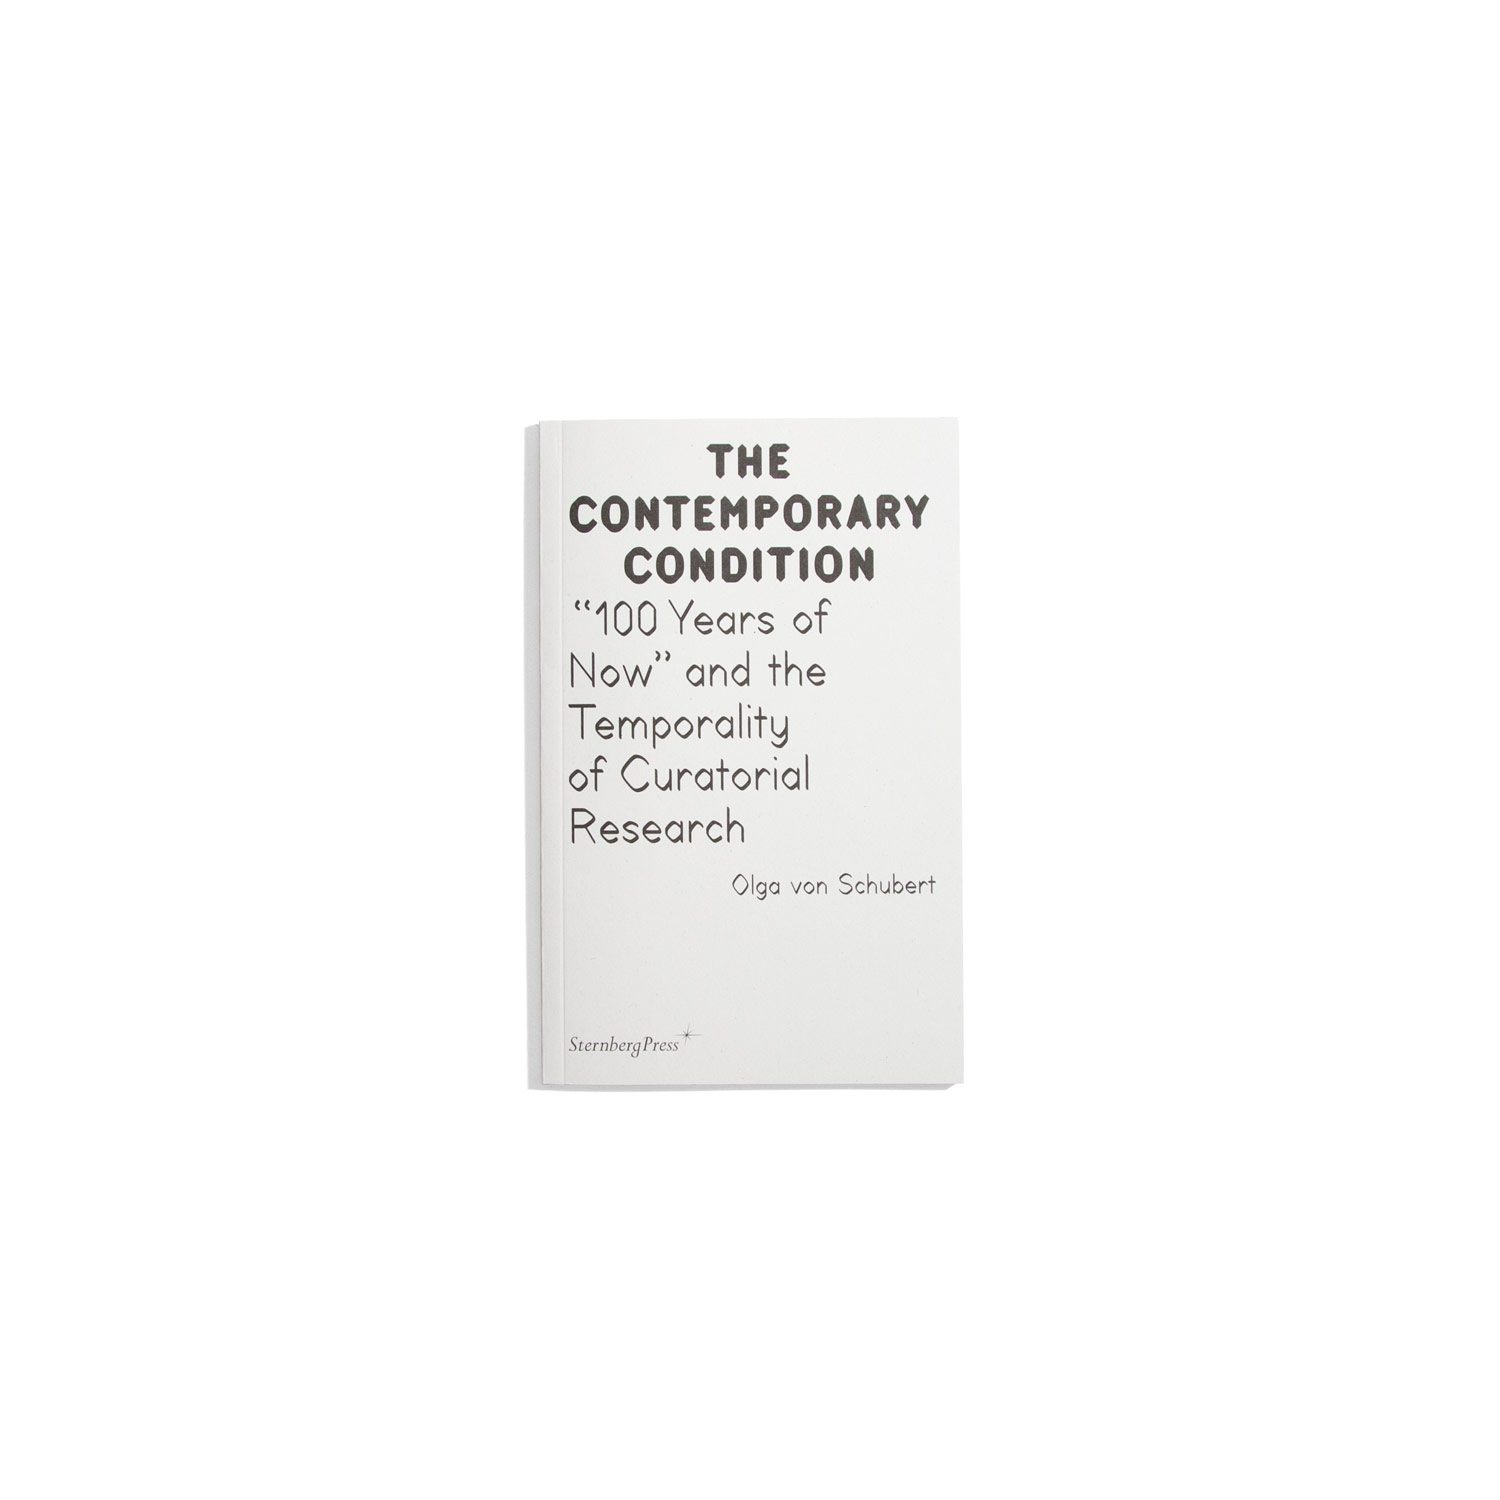 "The Contemporary Condition #11 - 100 Years of Now"" and the Temporality of Curatorial Research"